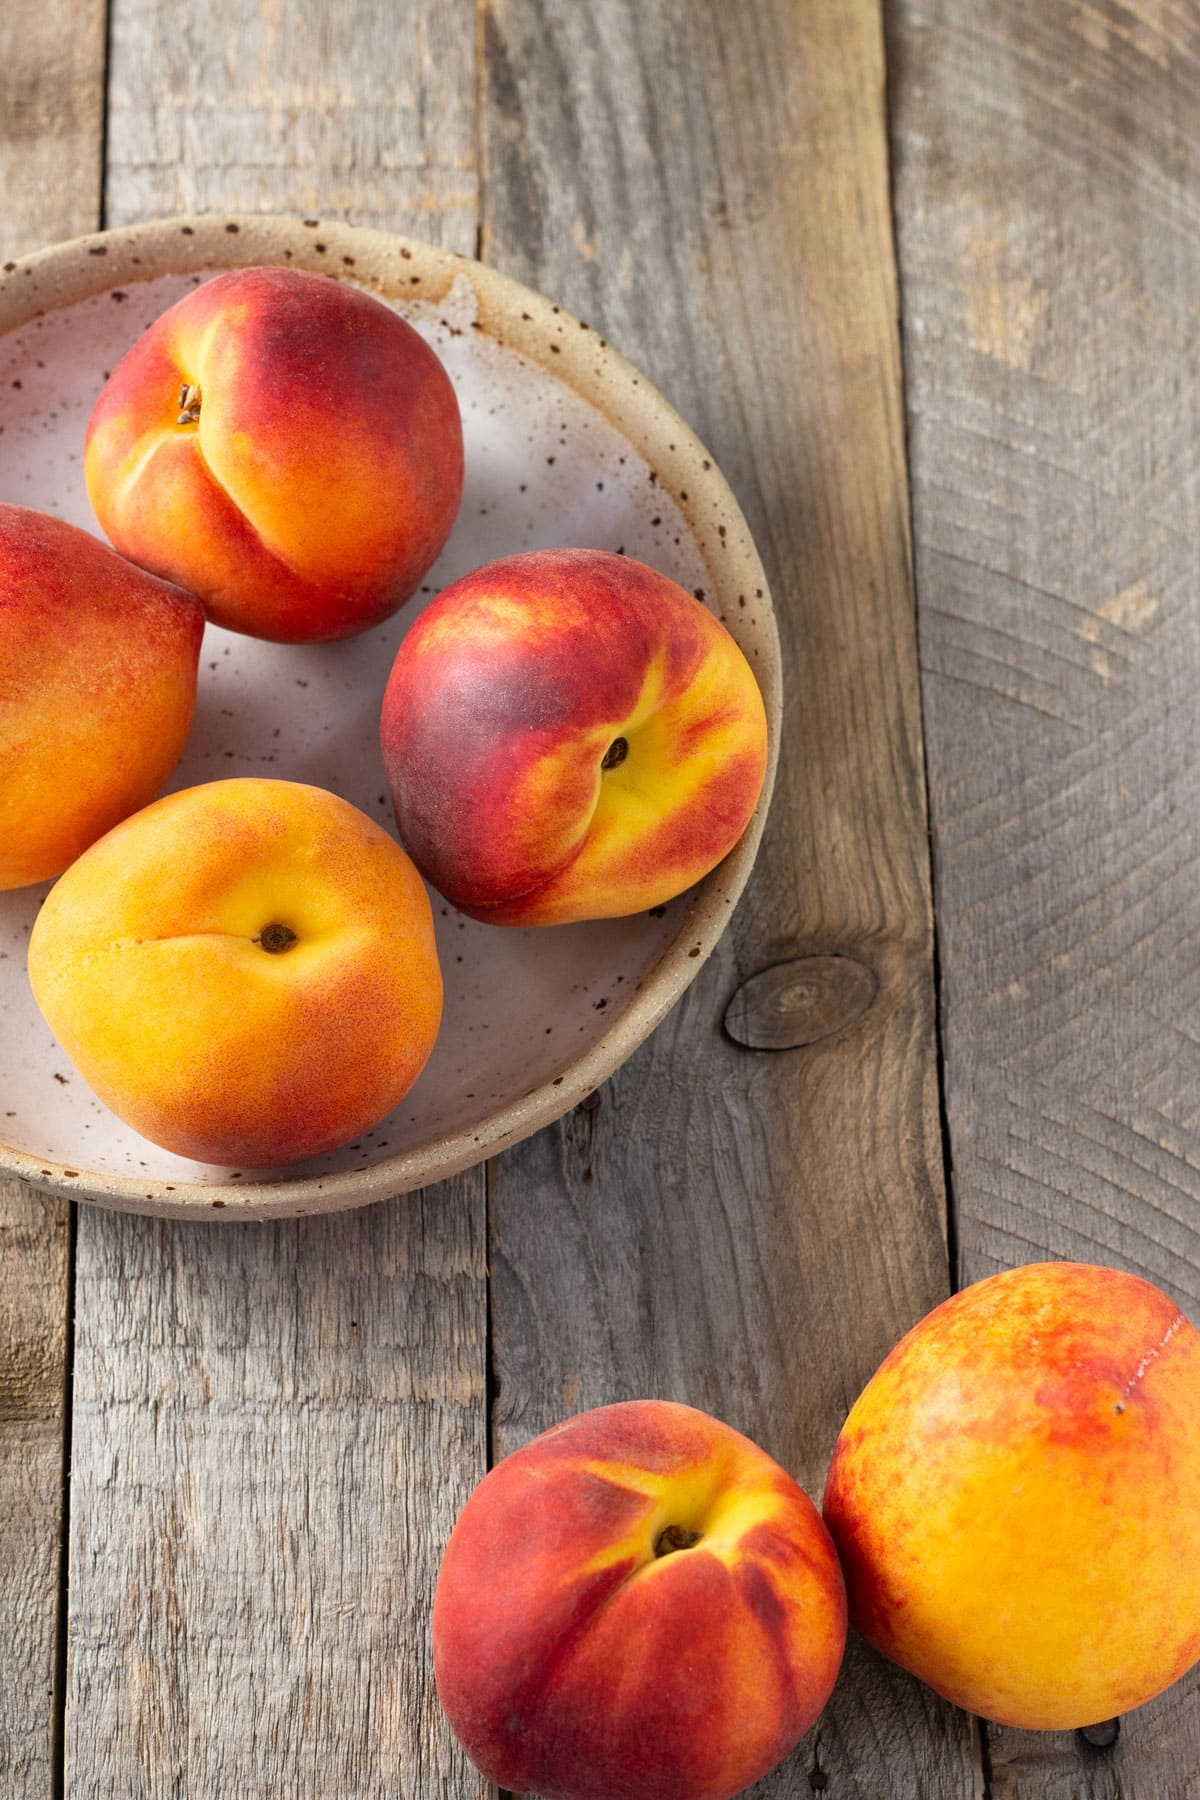 Group of fresh peaches on a rustic wood surface.